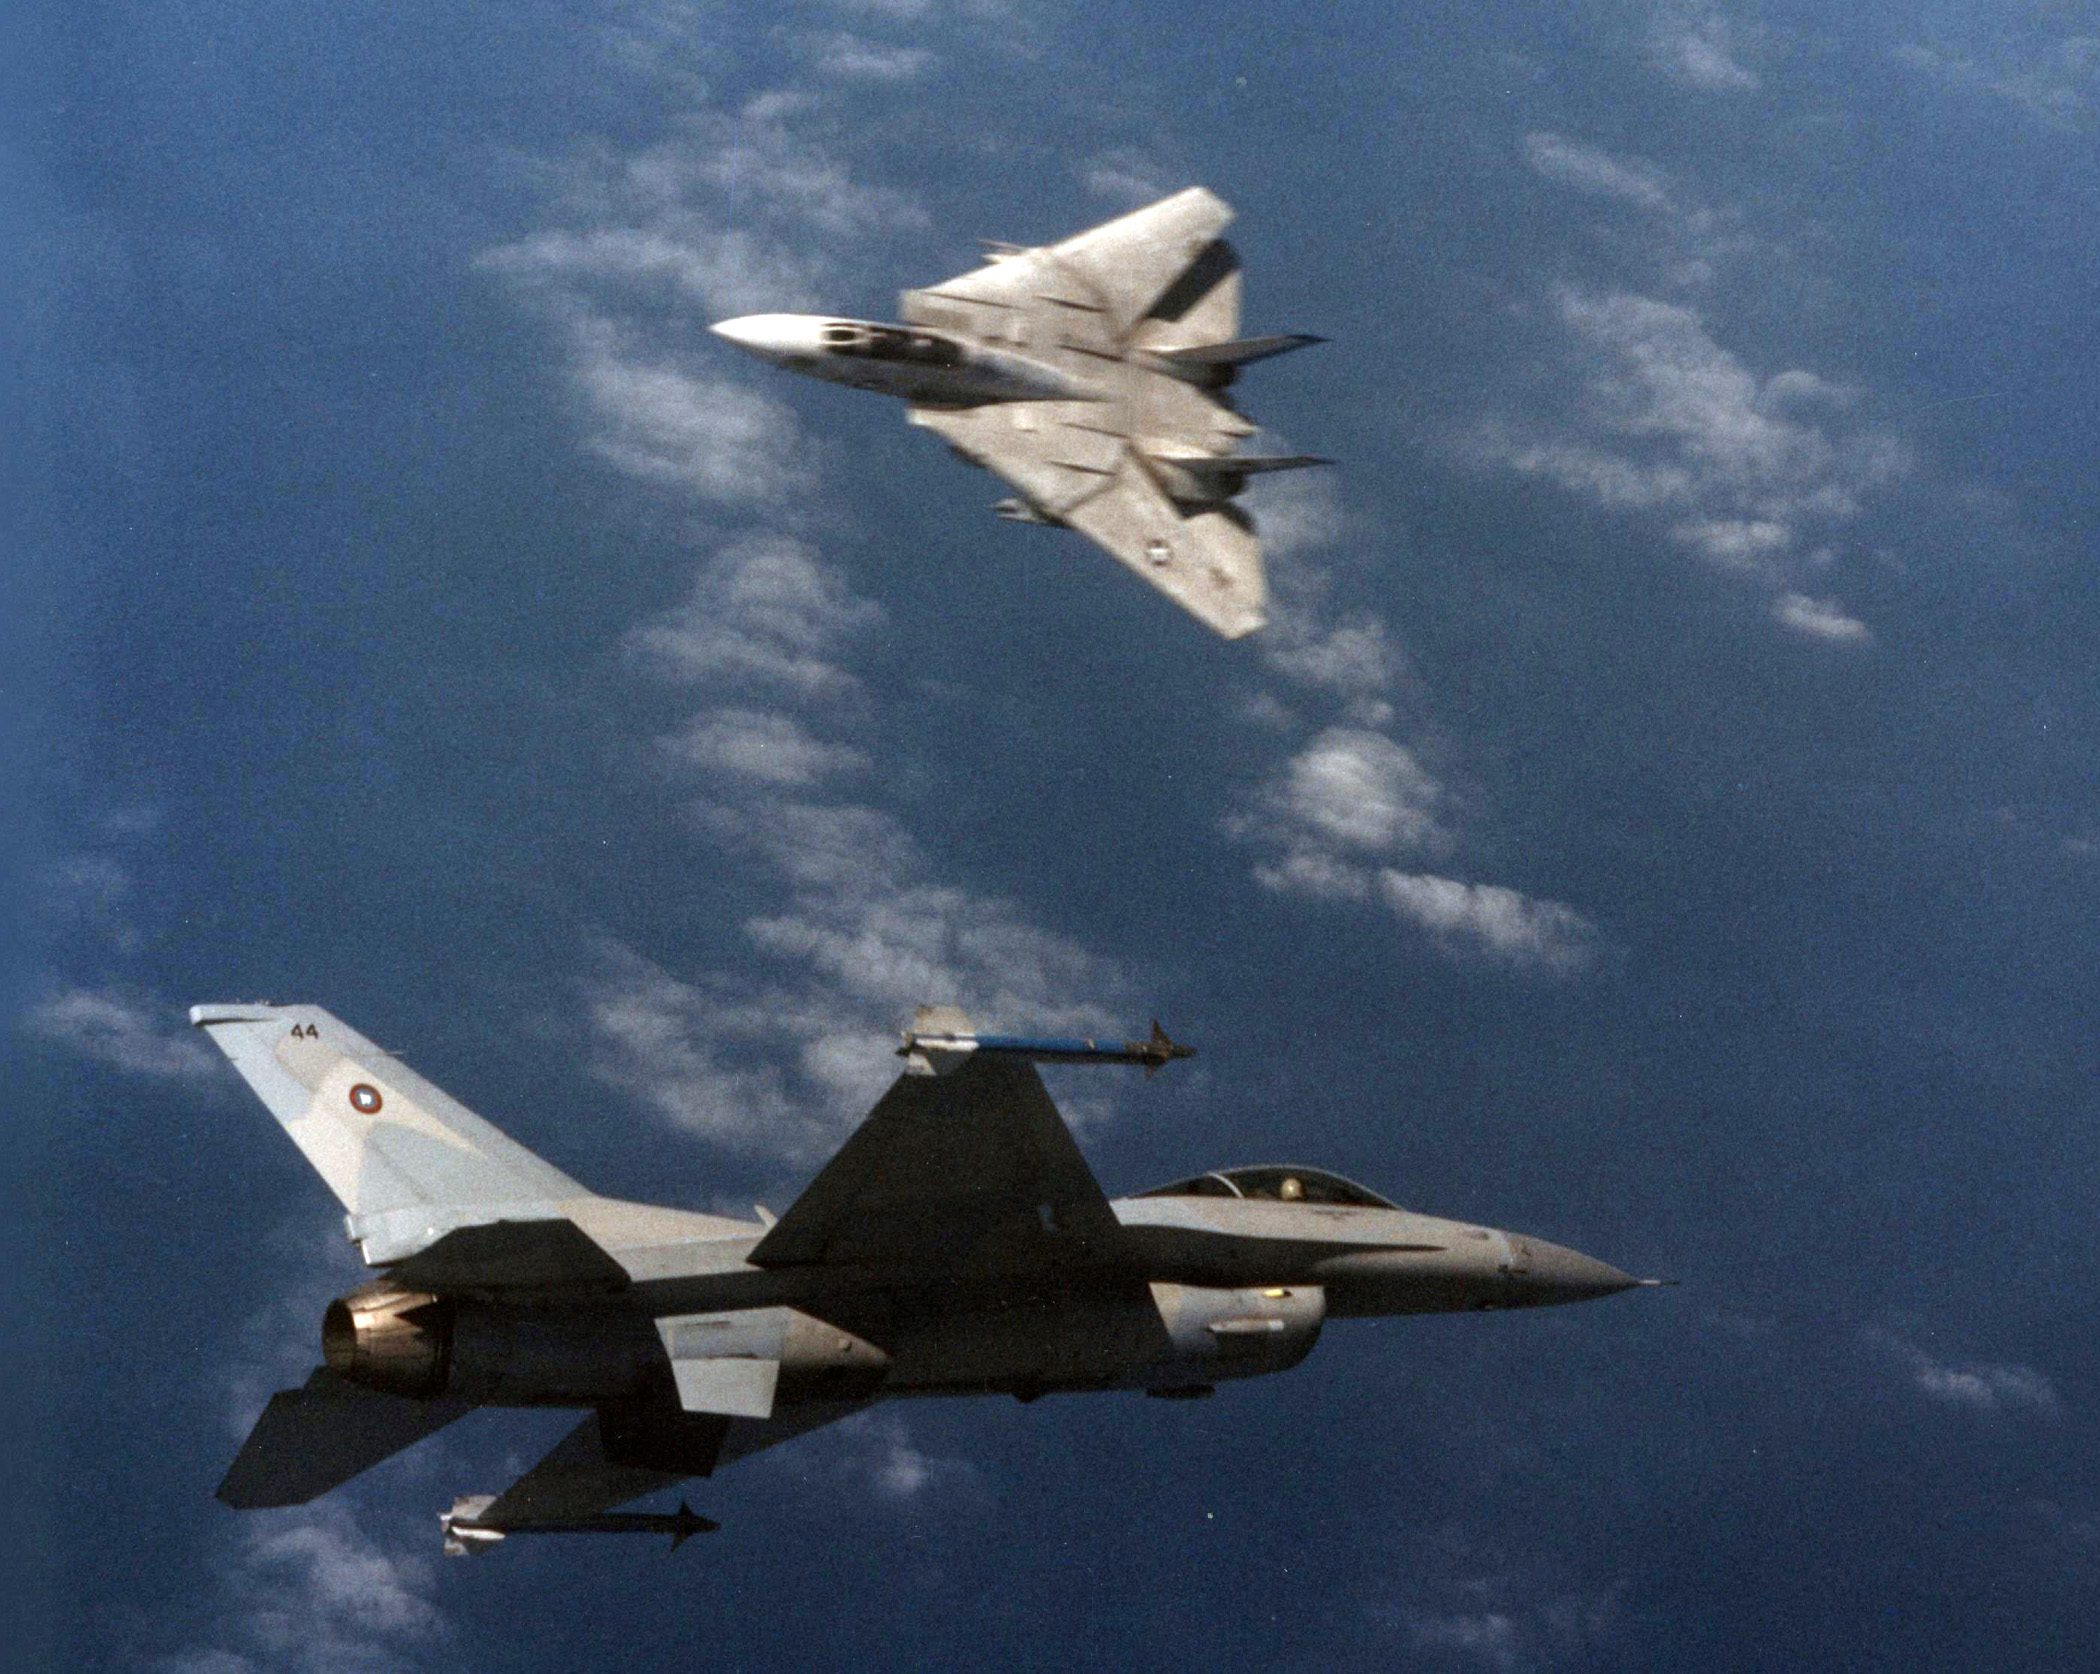 File:F-14A Tomcat of VF-213 in dogfight with TopGun F-16N in March